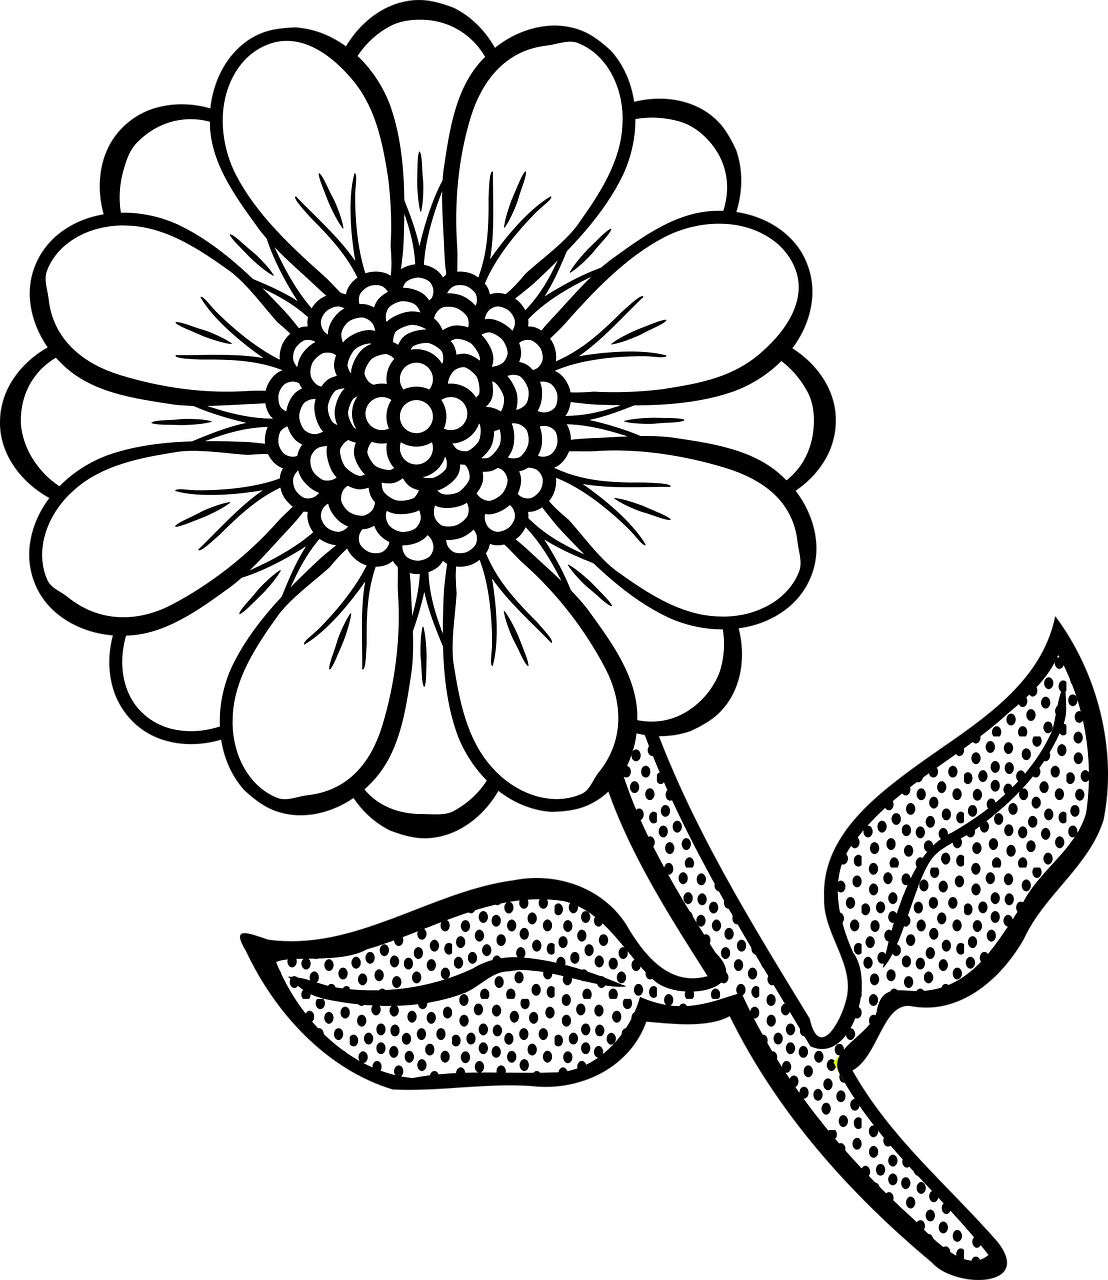 Free printable images of flowers png library library Free printable flower coloring pages: 16 pics - HOW-TO-DRAW in 1 minute png library library